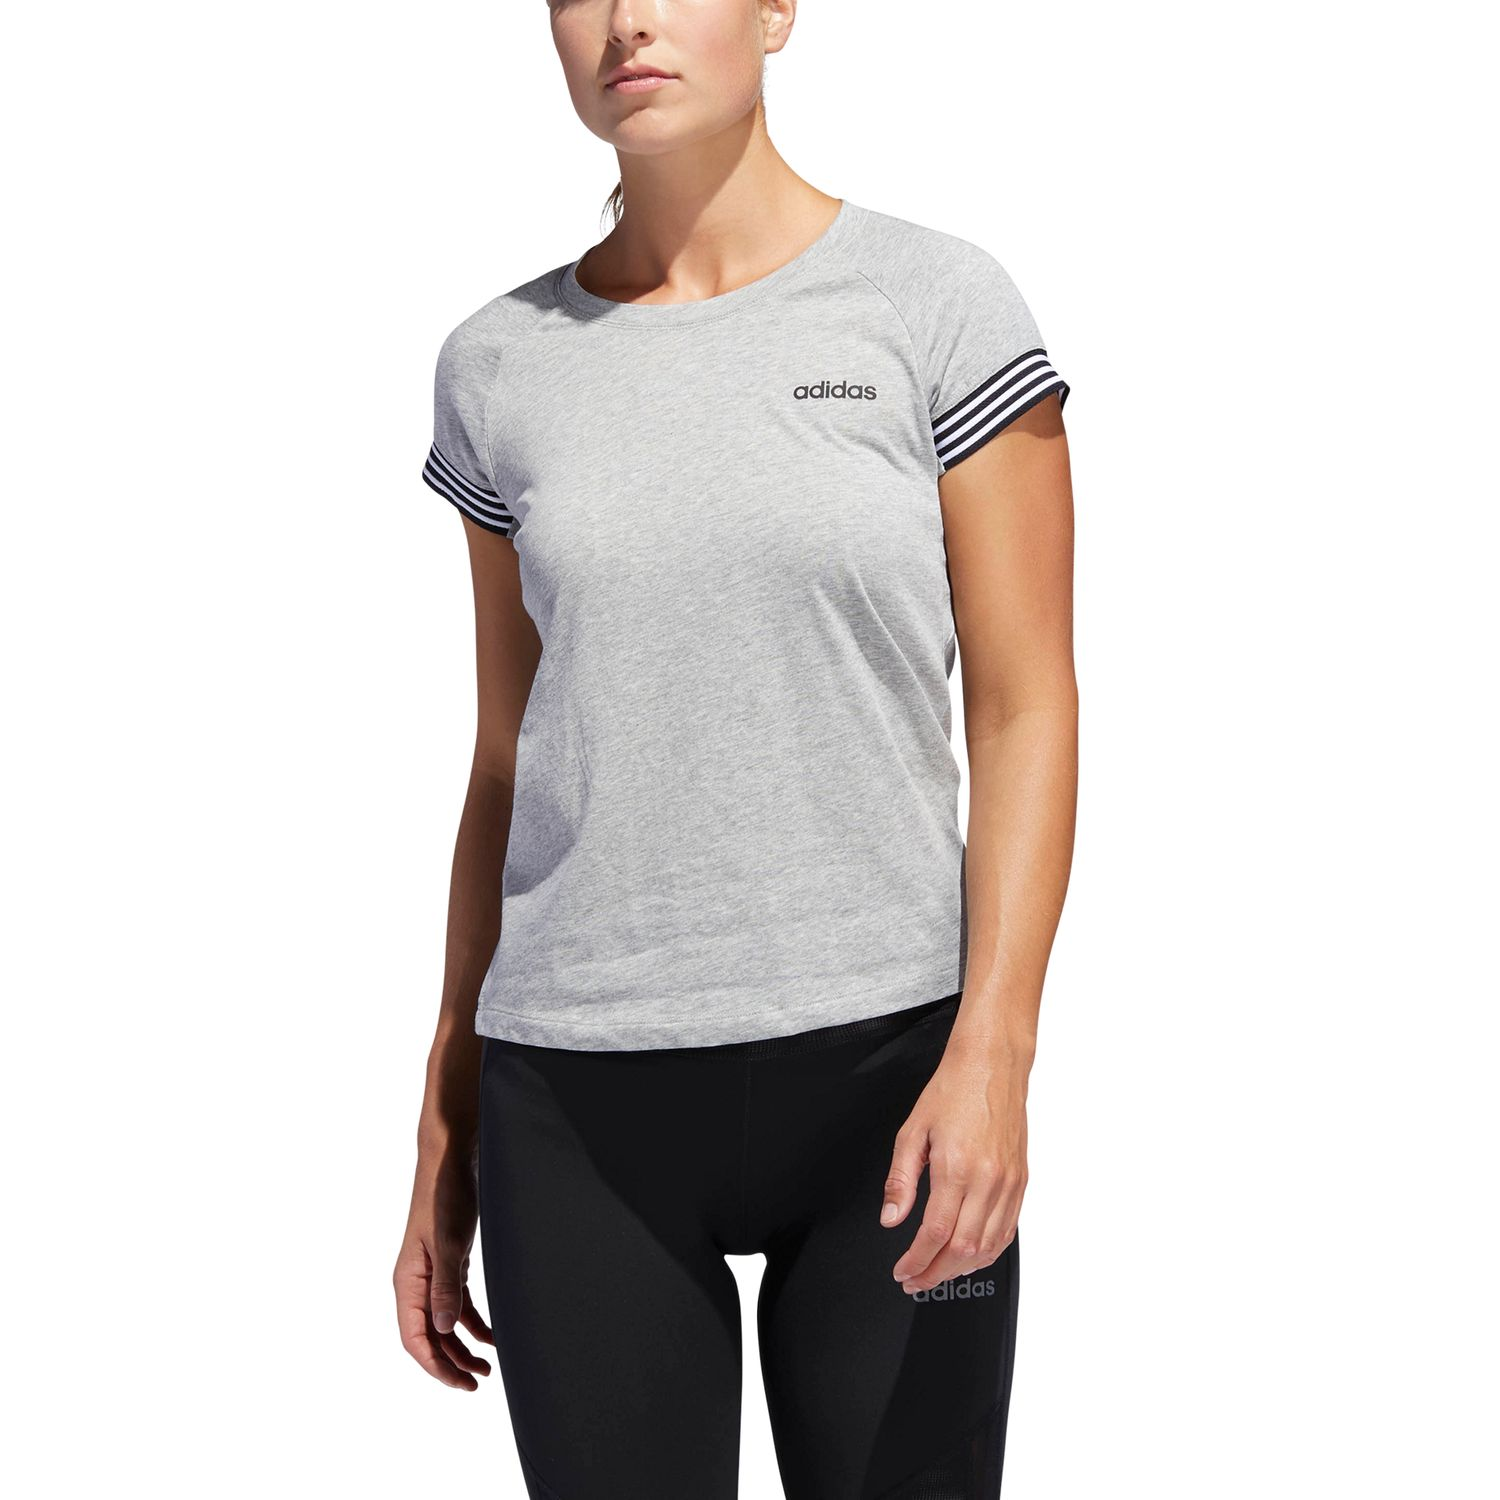 adidas Cotton Prime Damen T-Shirt – Bild 3